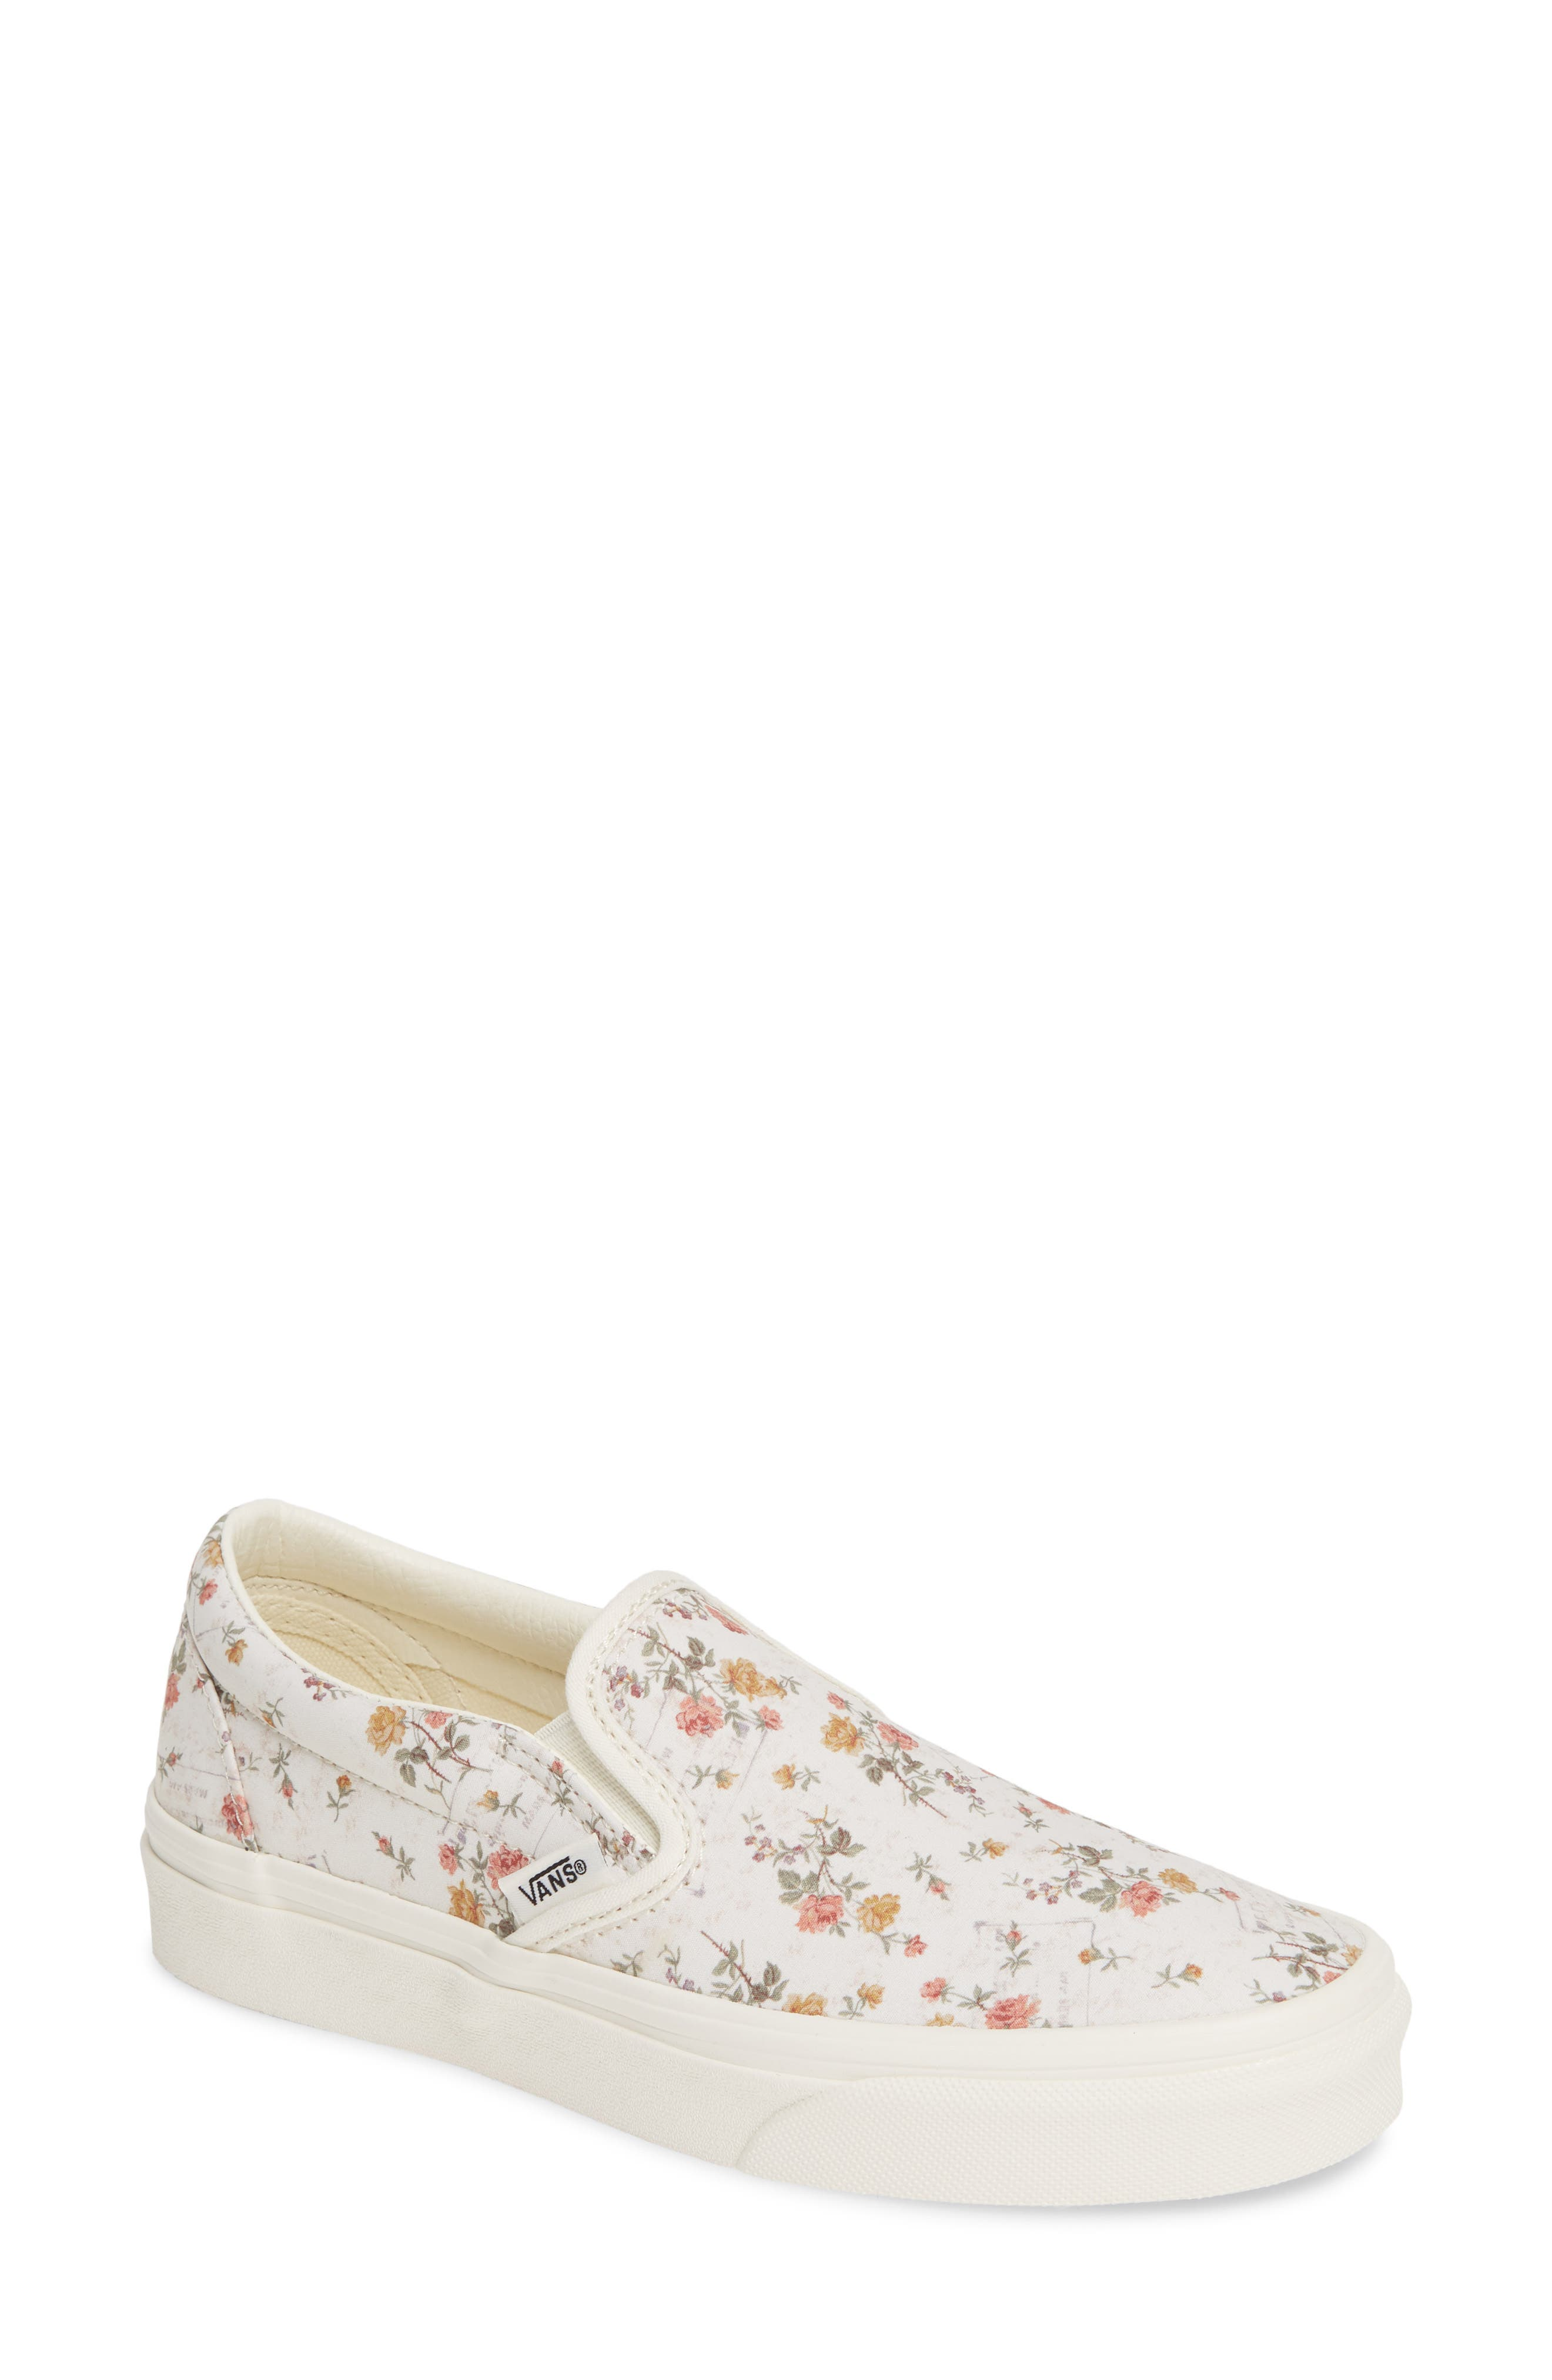 Classic Slip-On Sneaker, Main, color, VINTAGE FLORAL/ MARSHMALLOW